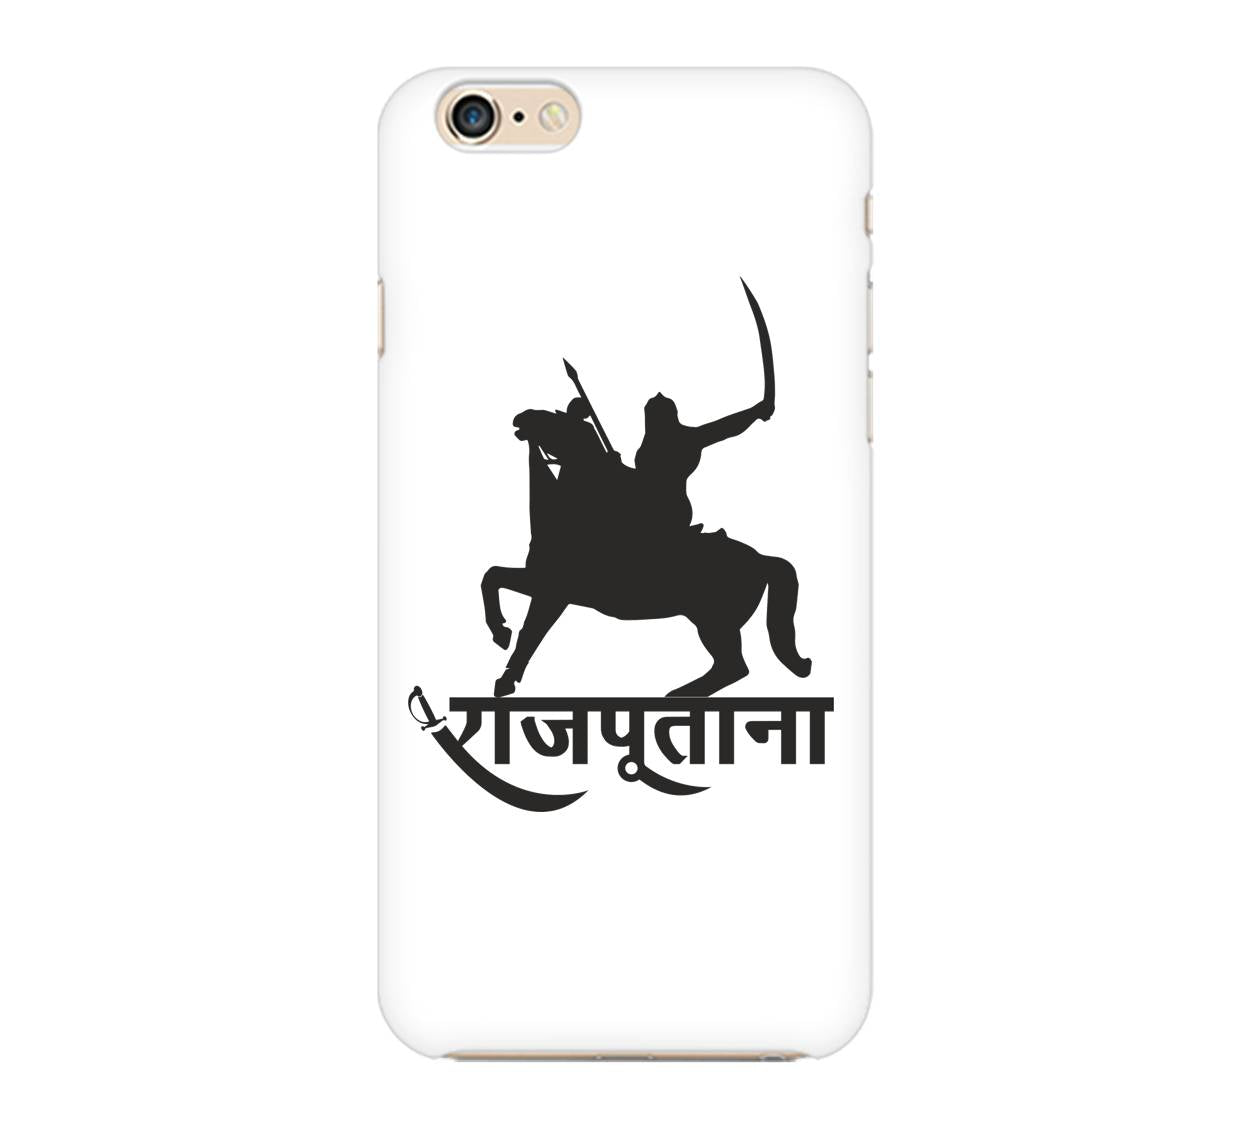 Rajputana Phone Cover